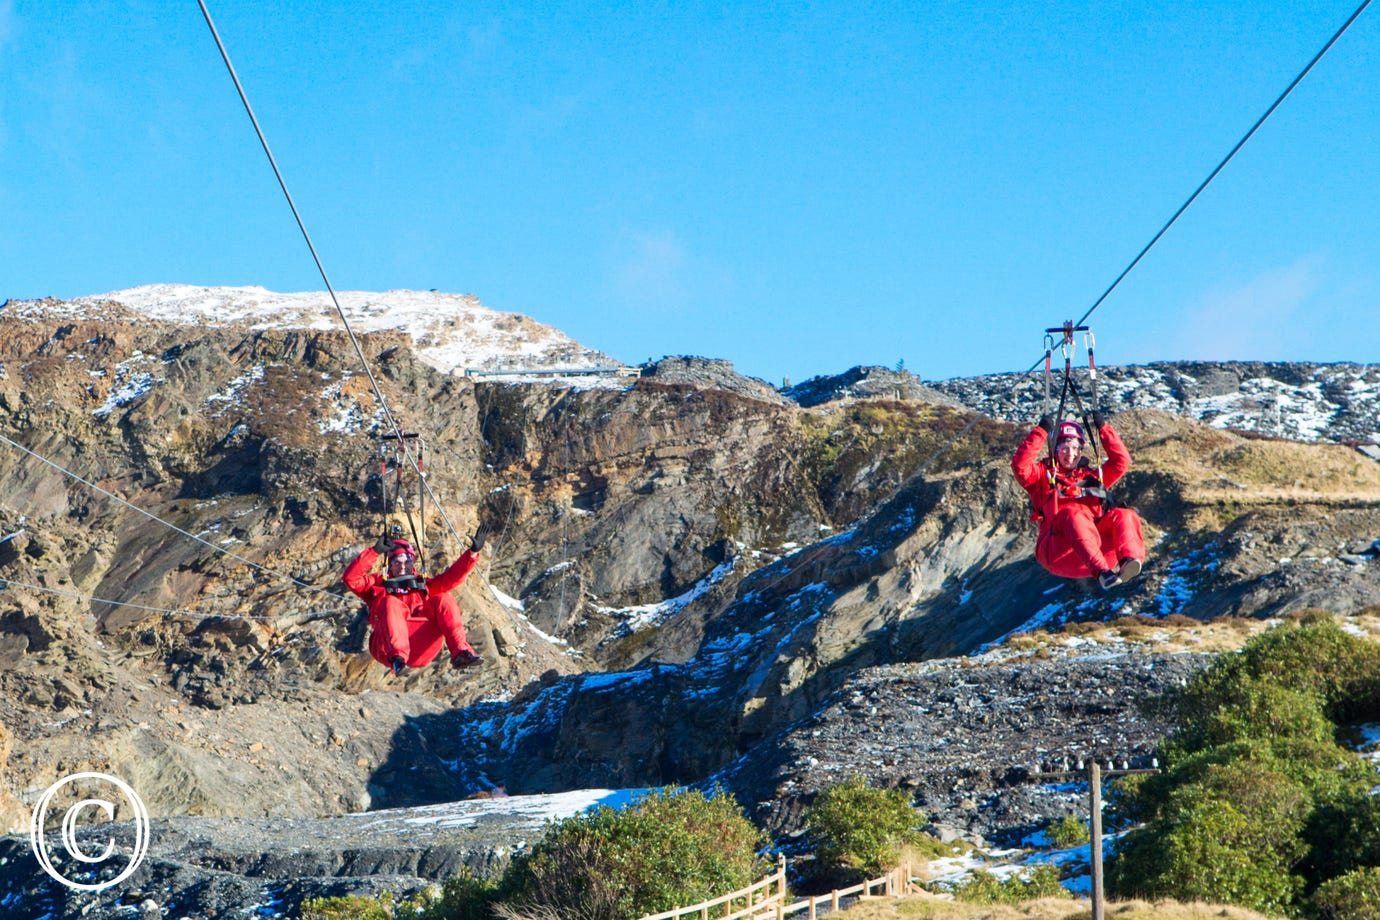 Zip World Titan at Blaenau Ffestiniog, where you will also find Bounce Below